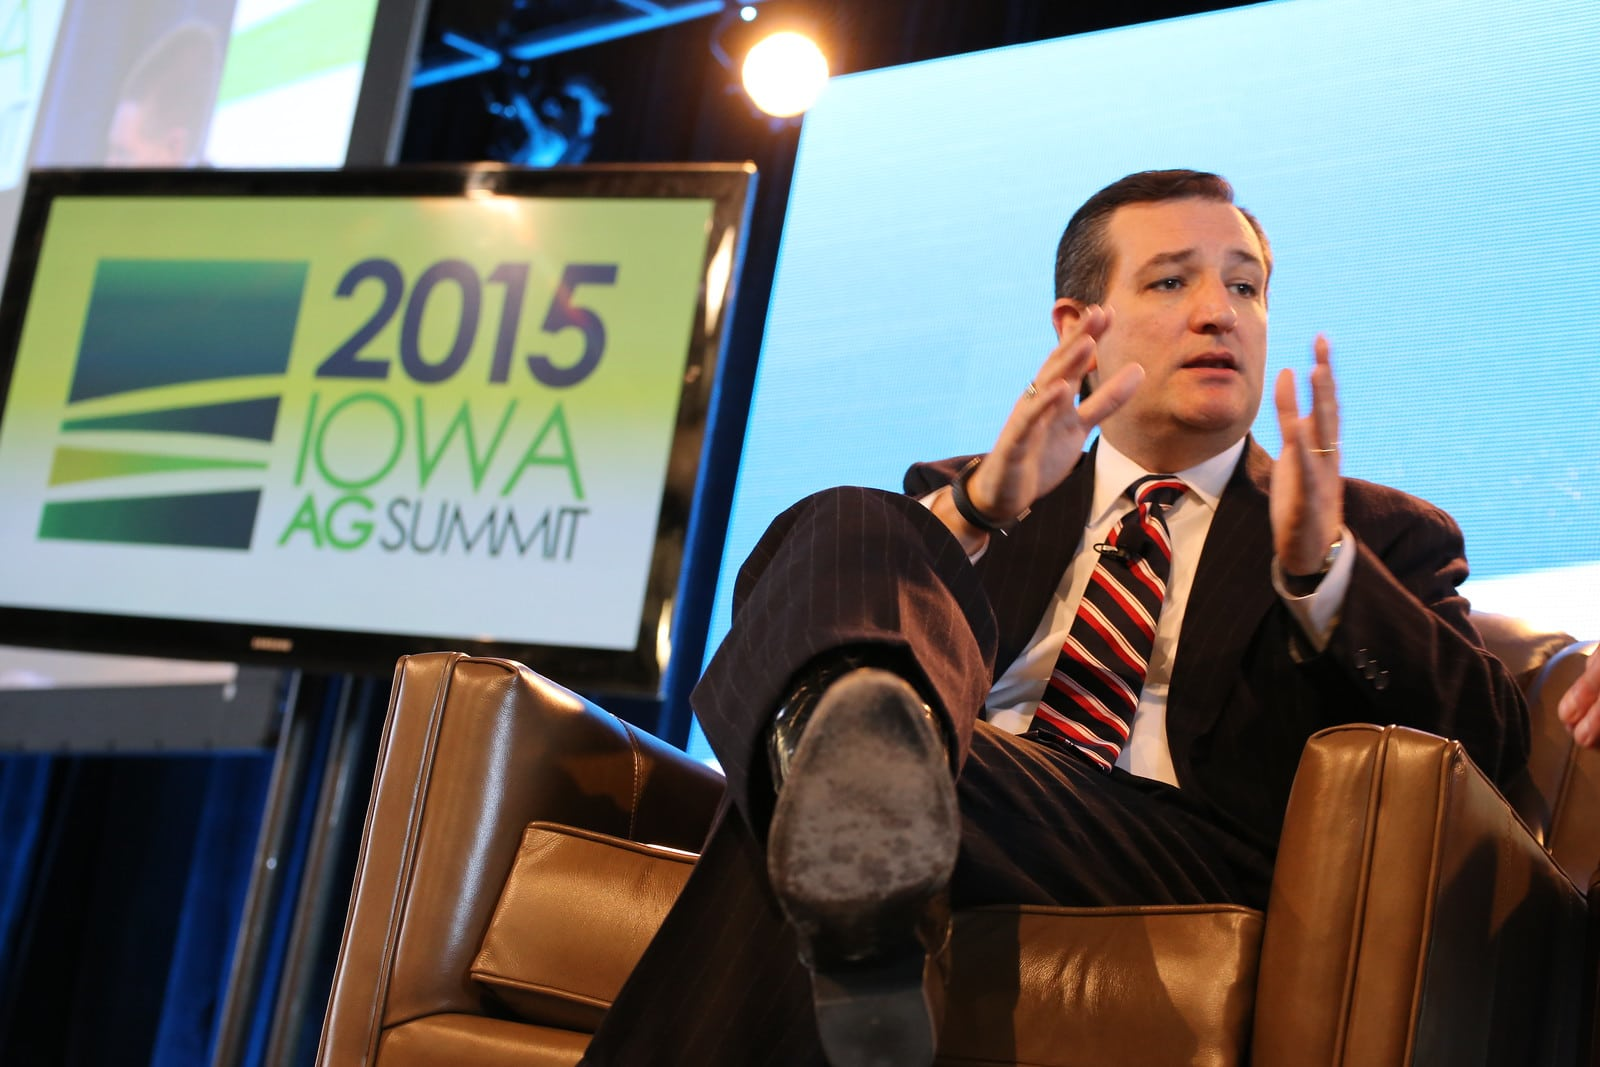 U.S. Senator Ted Cruz (R-TX) at the 2015 Iowa Ag Summit in Des Moines. Photo credit: Dave Davidson (Prezography.com)